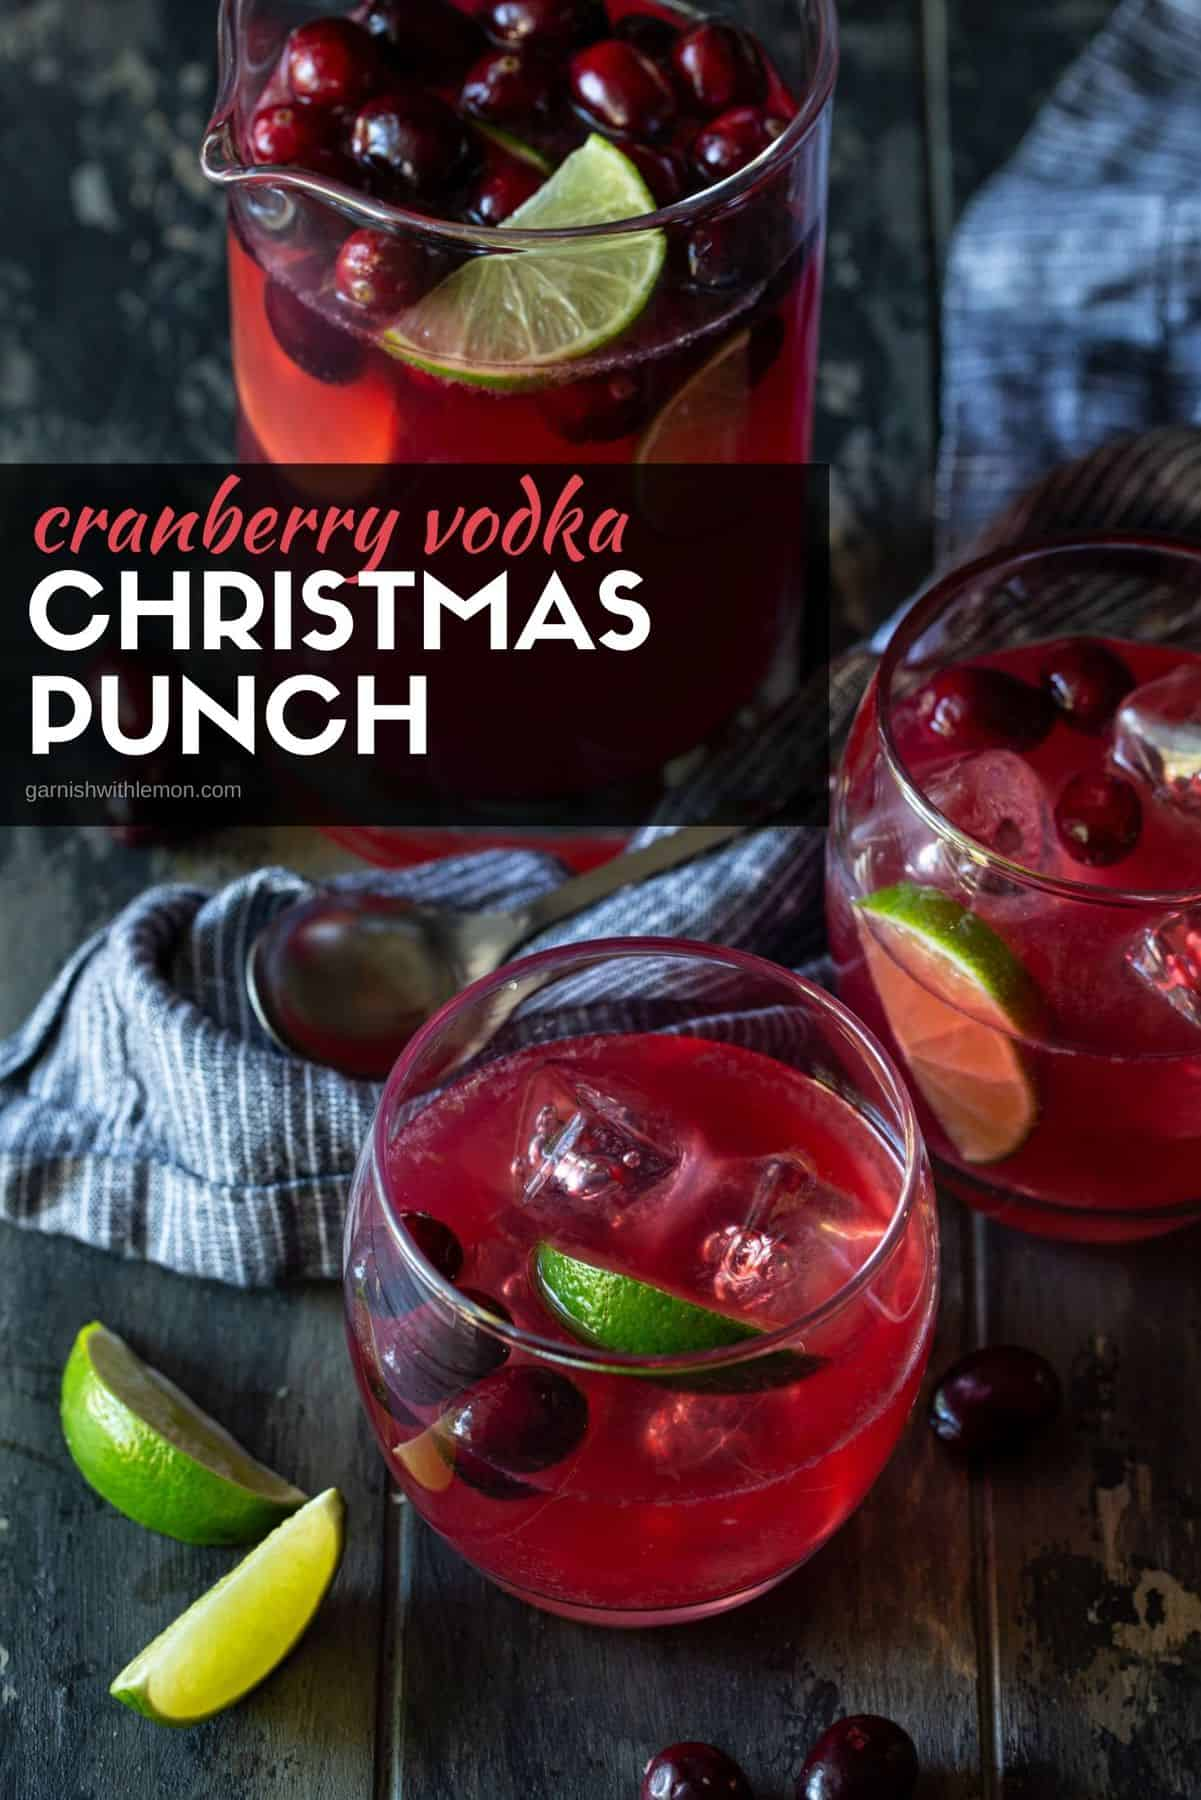 Two glasses of punch garrnished with fresh cranberries and lime wedges with a pitcher of punch in the background.